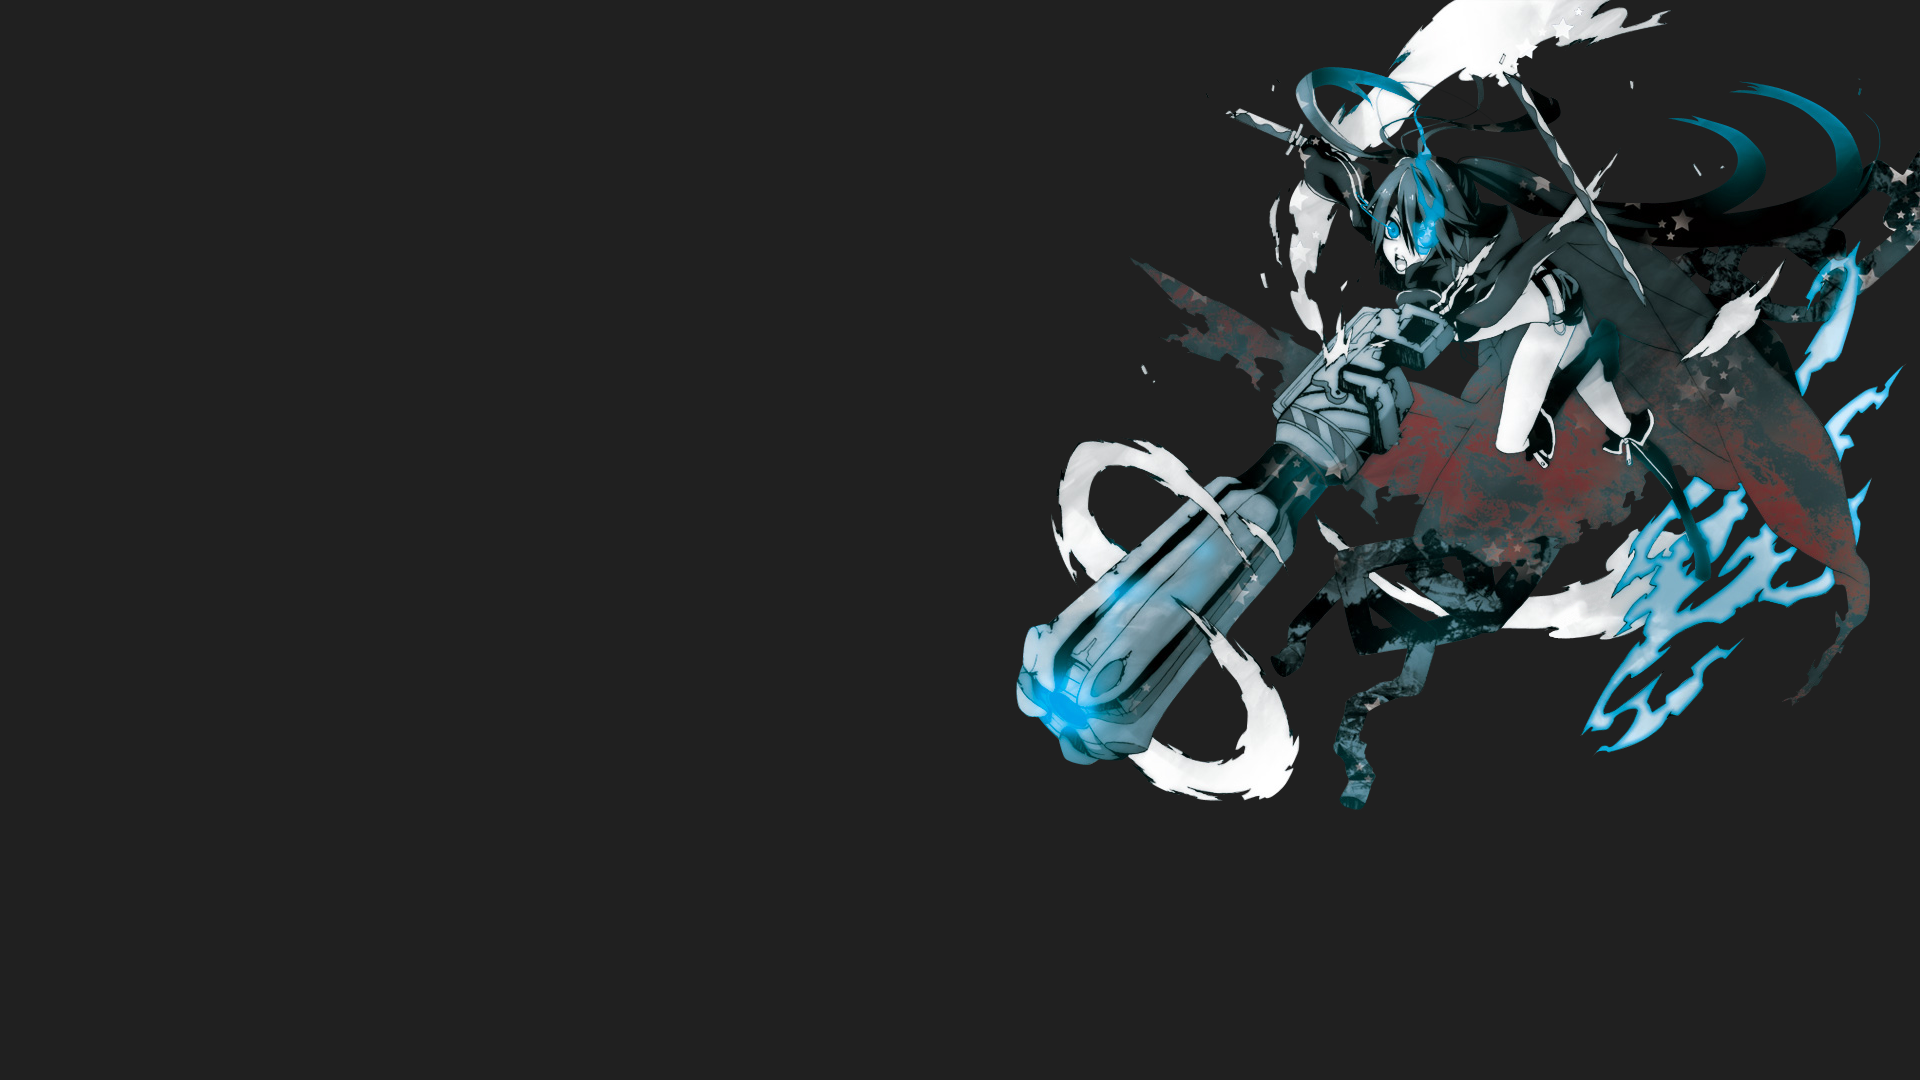 anime gun wallpaper - wallpapersafari